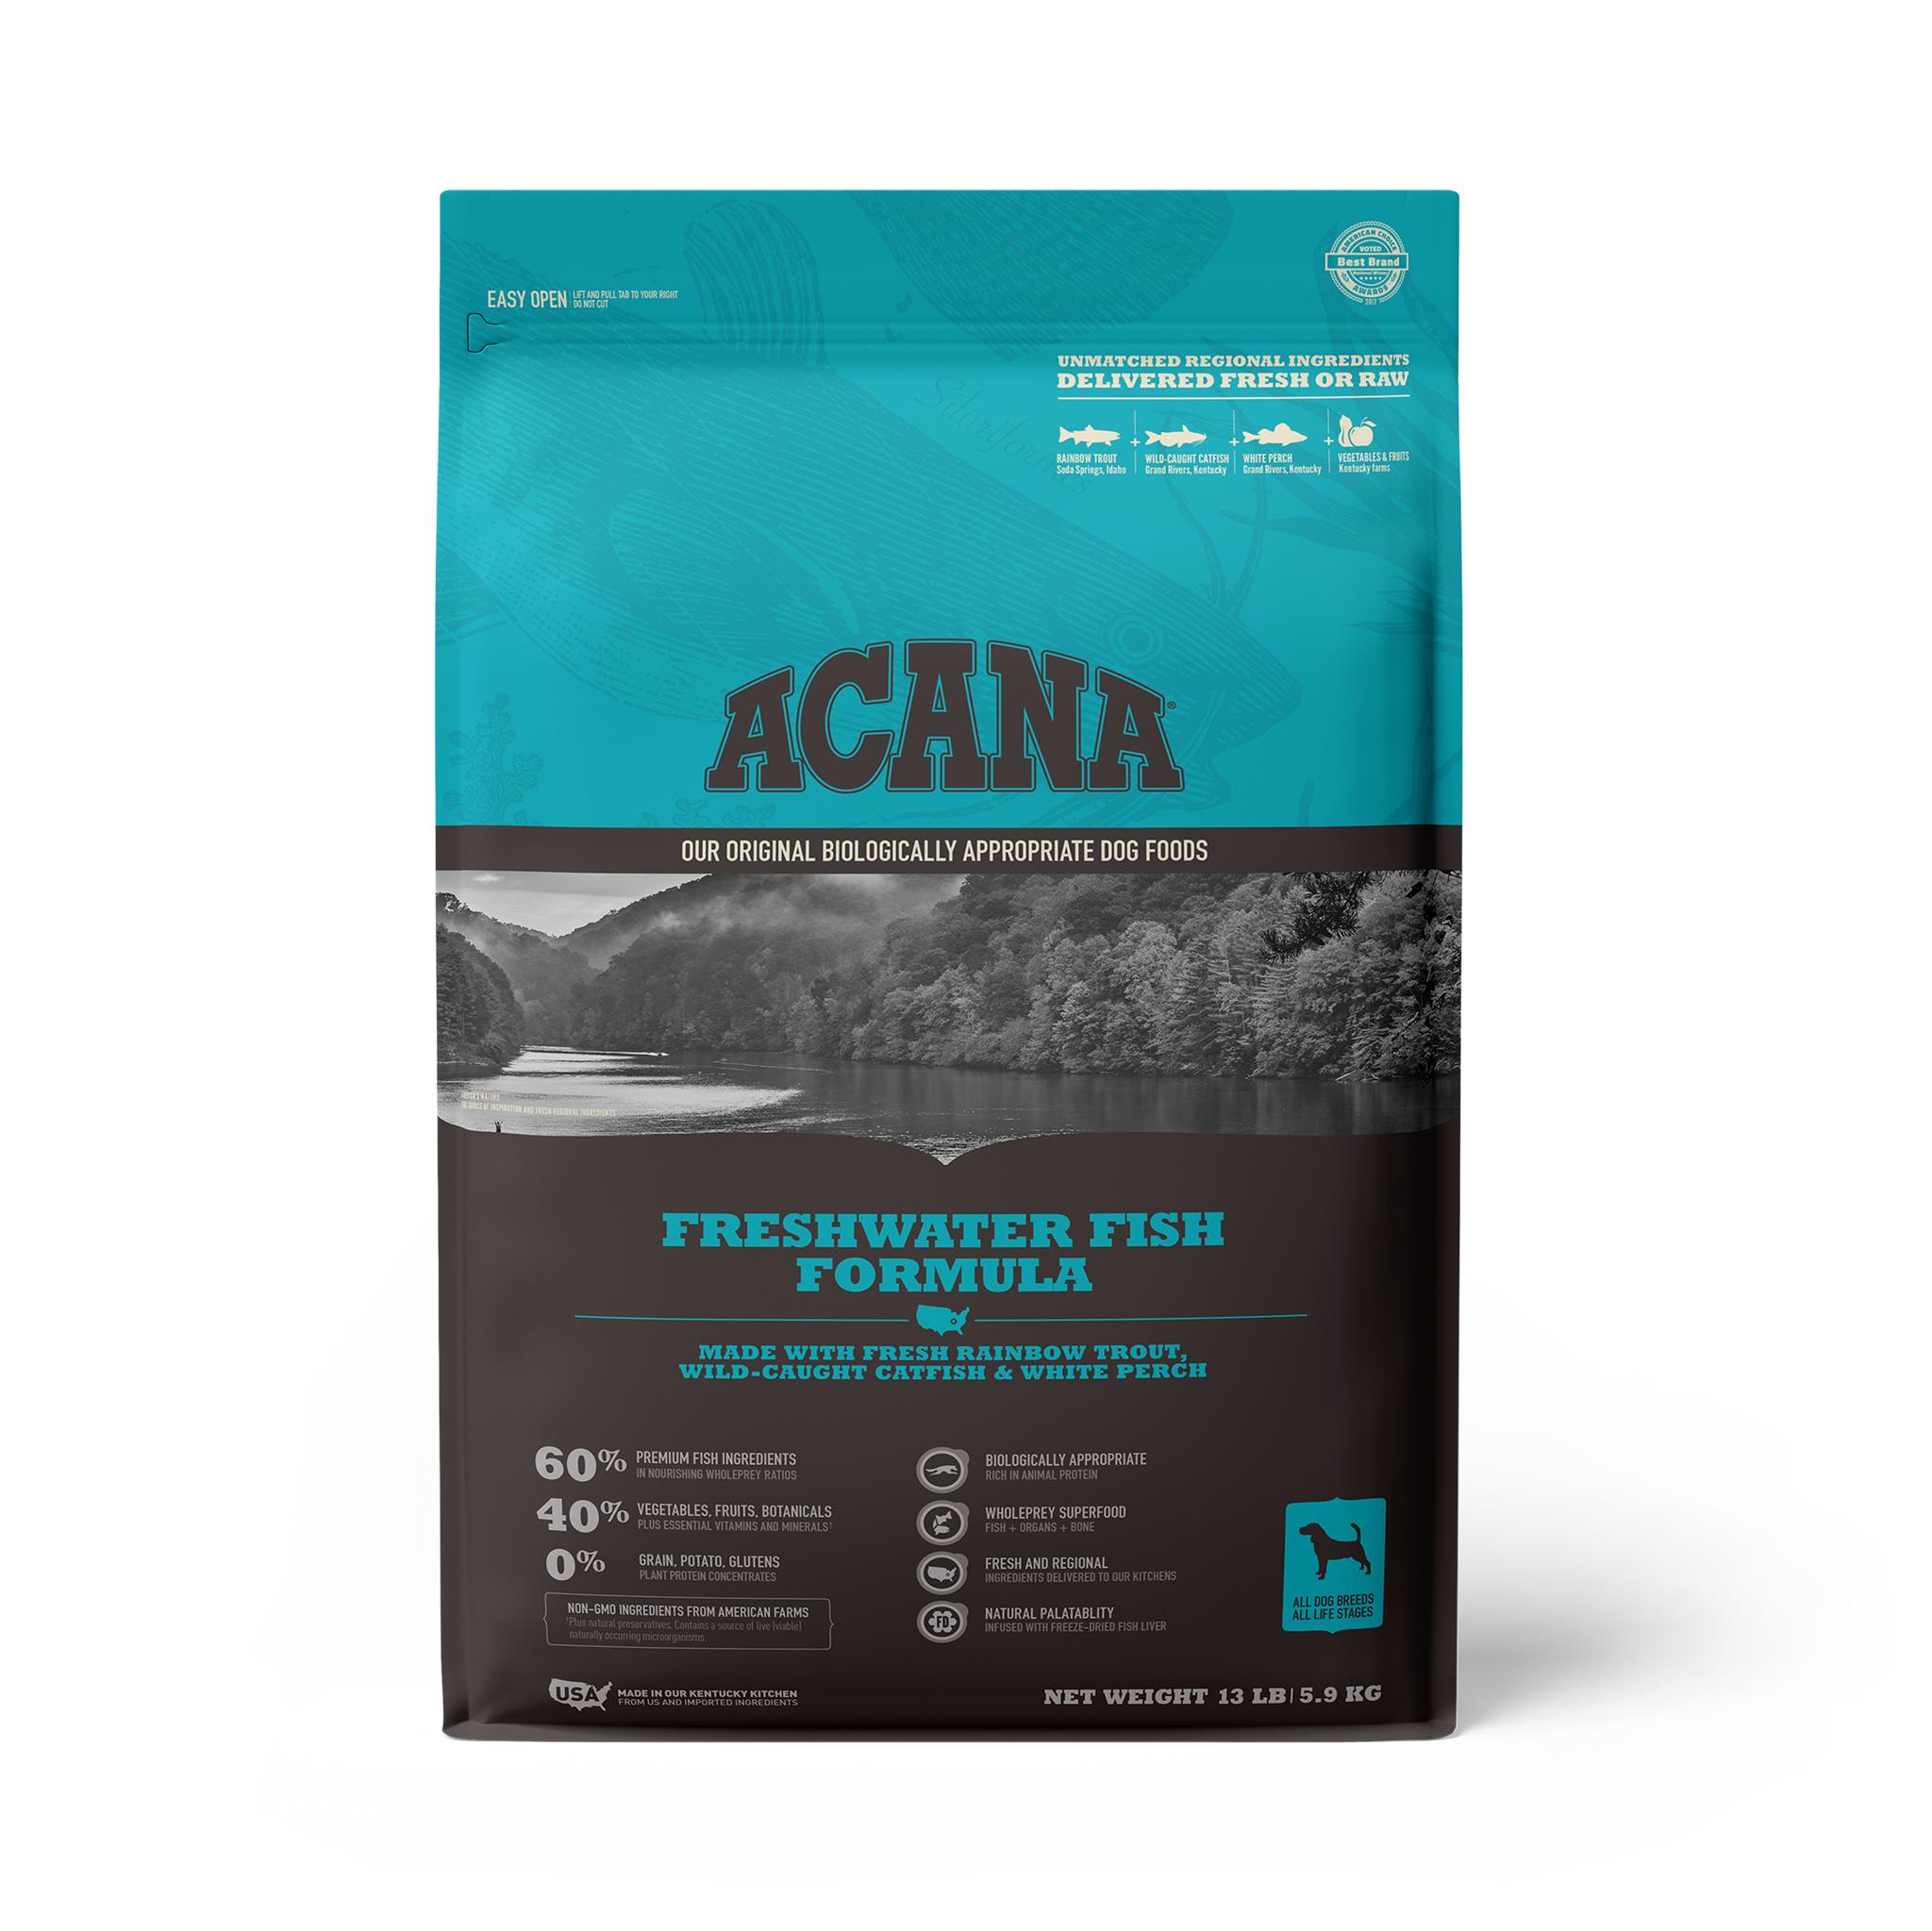 ACANA Freshwater Fish Grain-Free Dry Dog Food, 13-lb